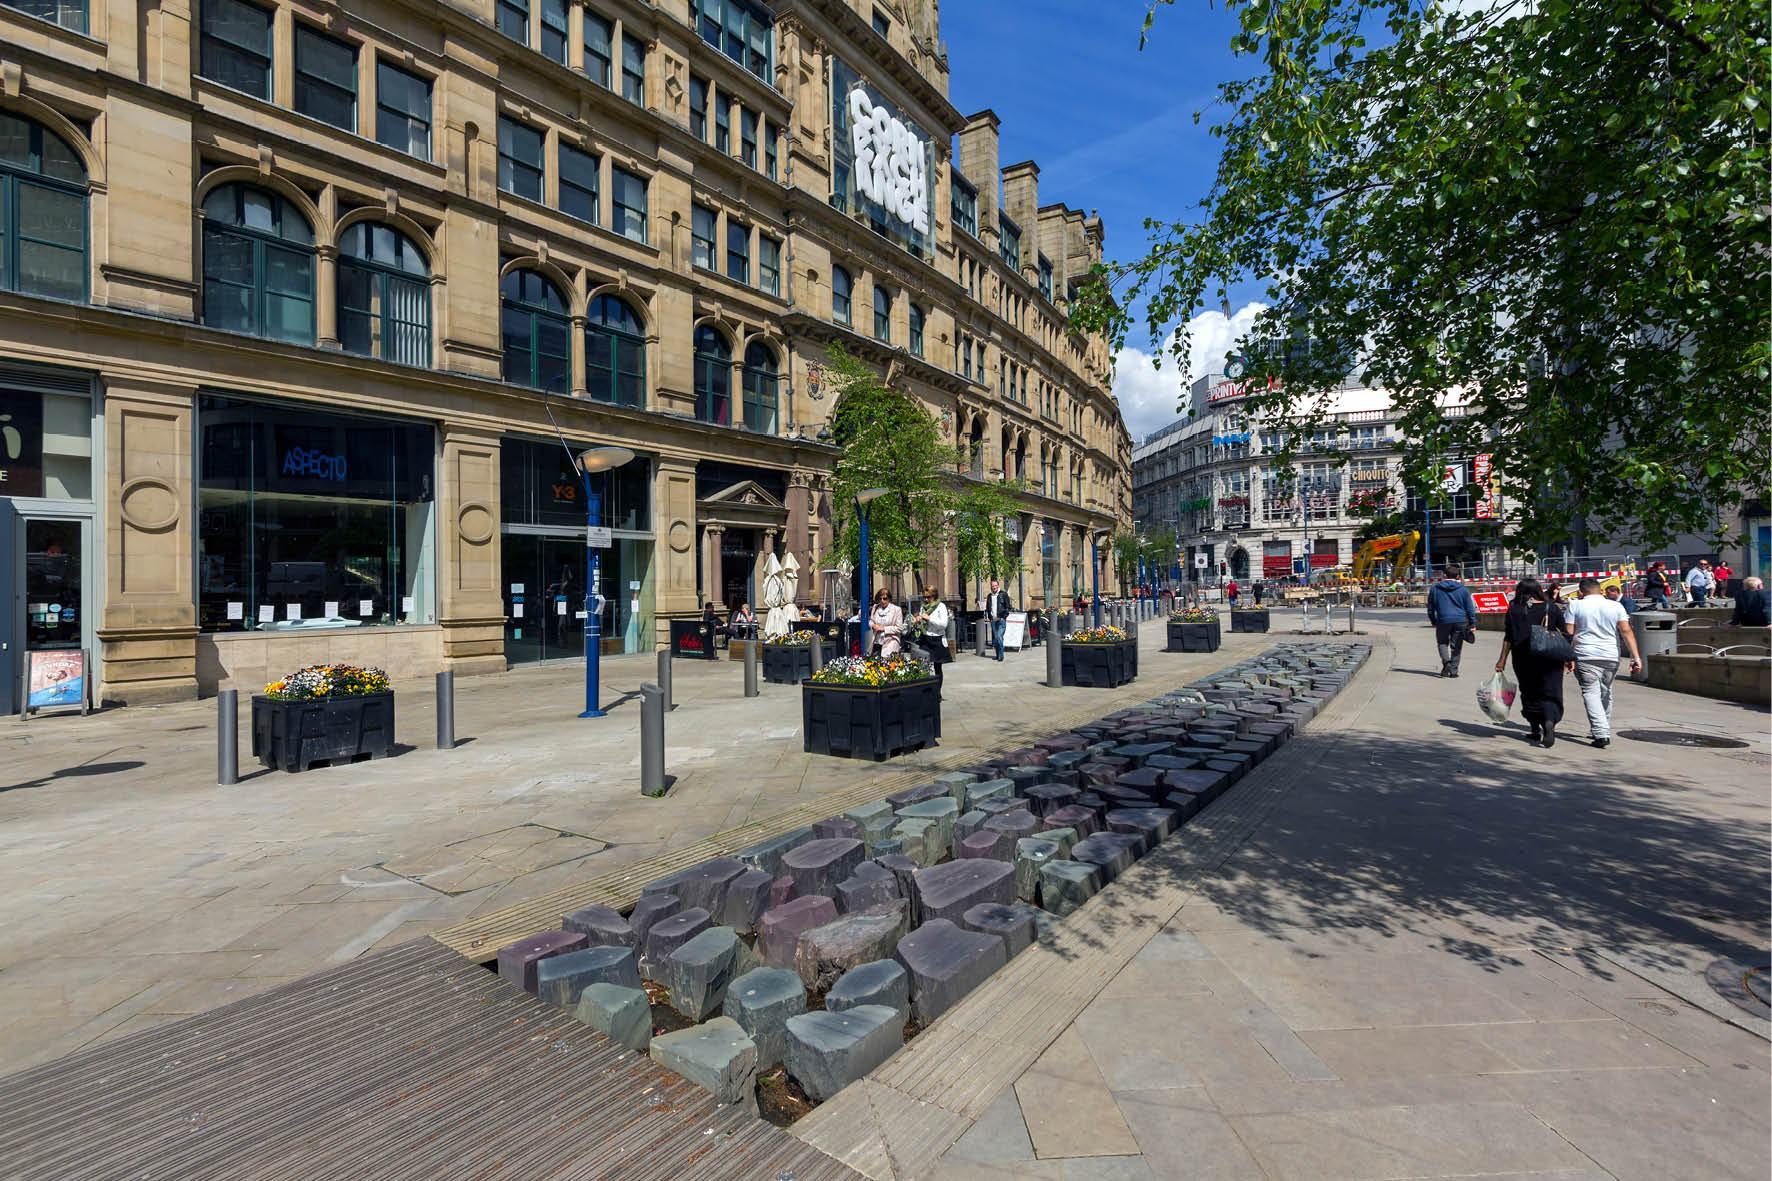 deansgate_square_manchester_39.jpg